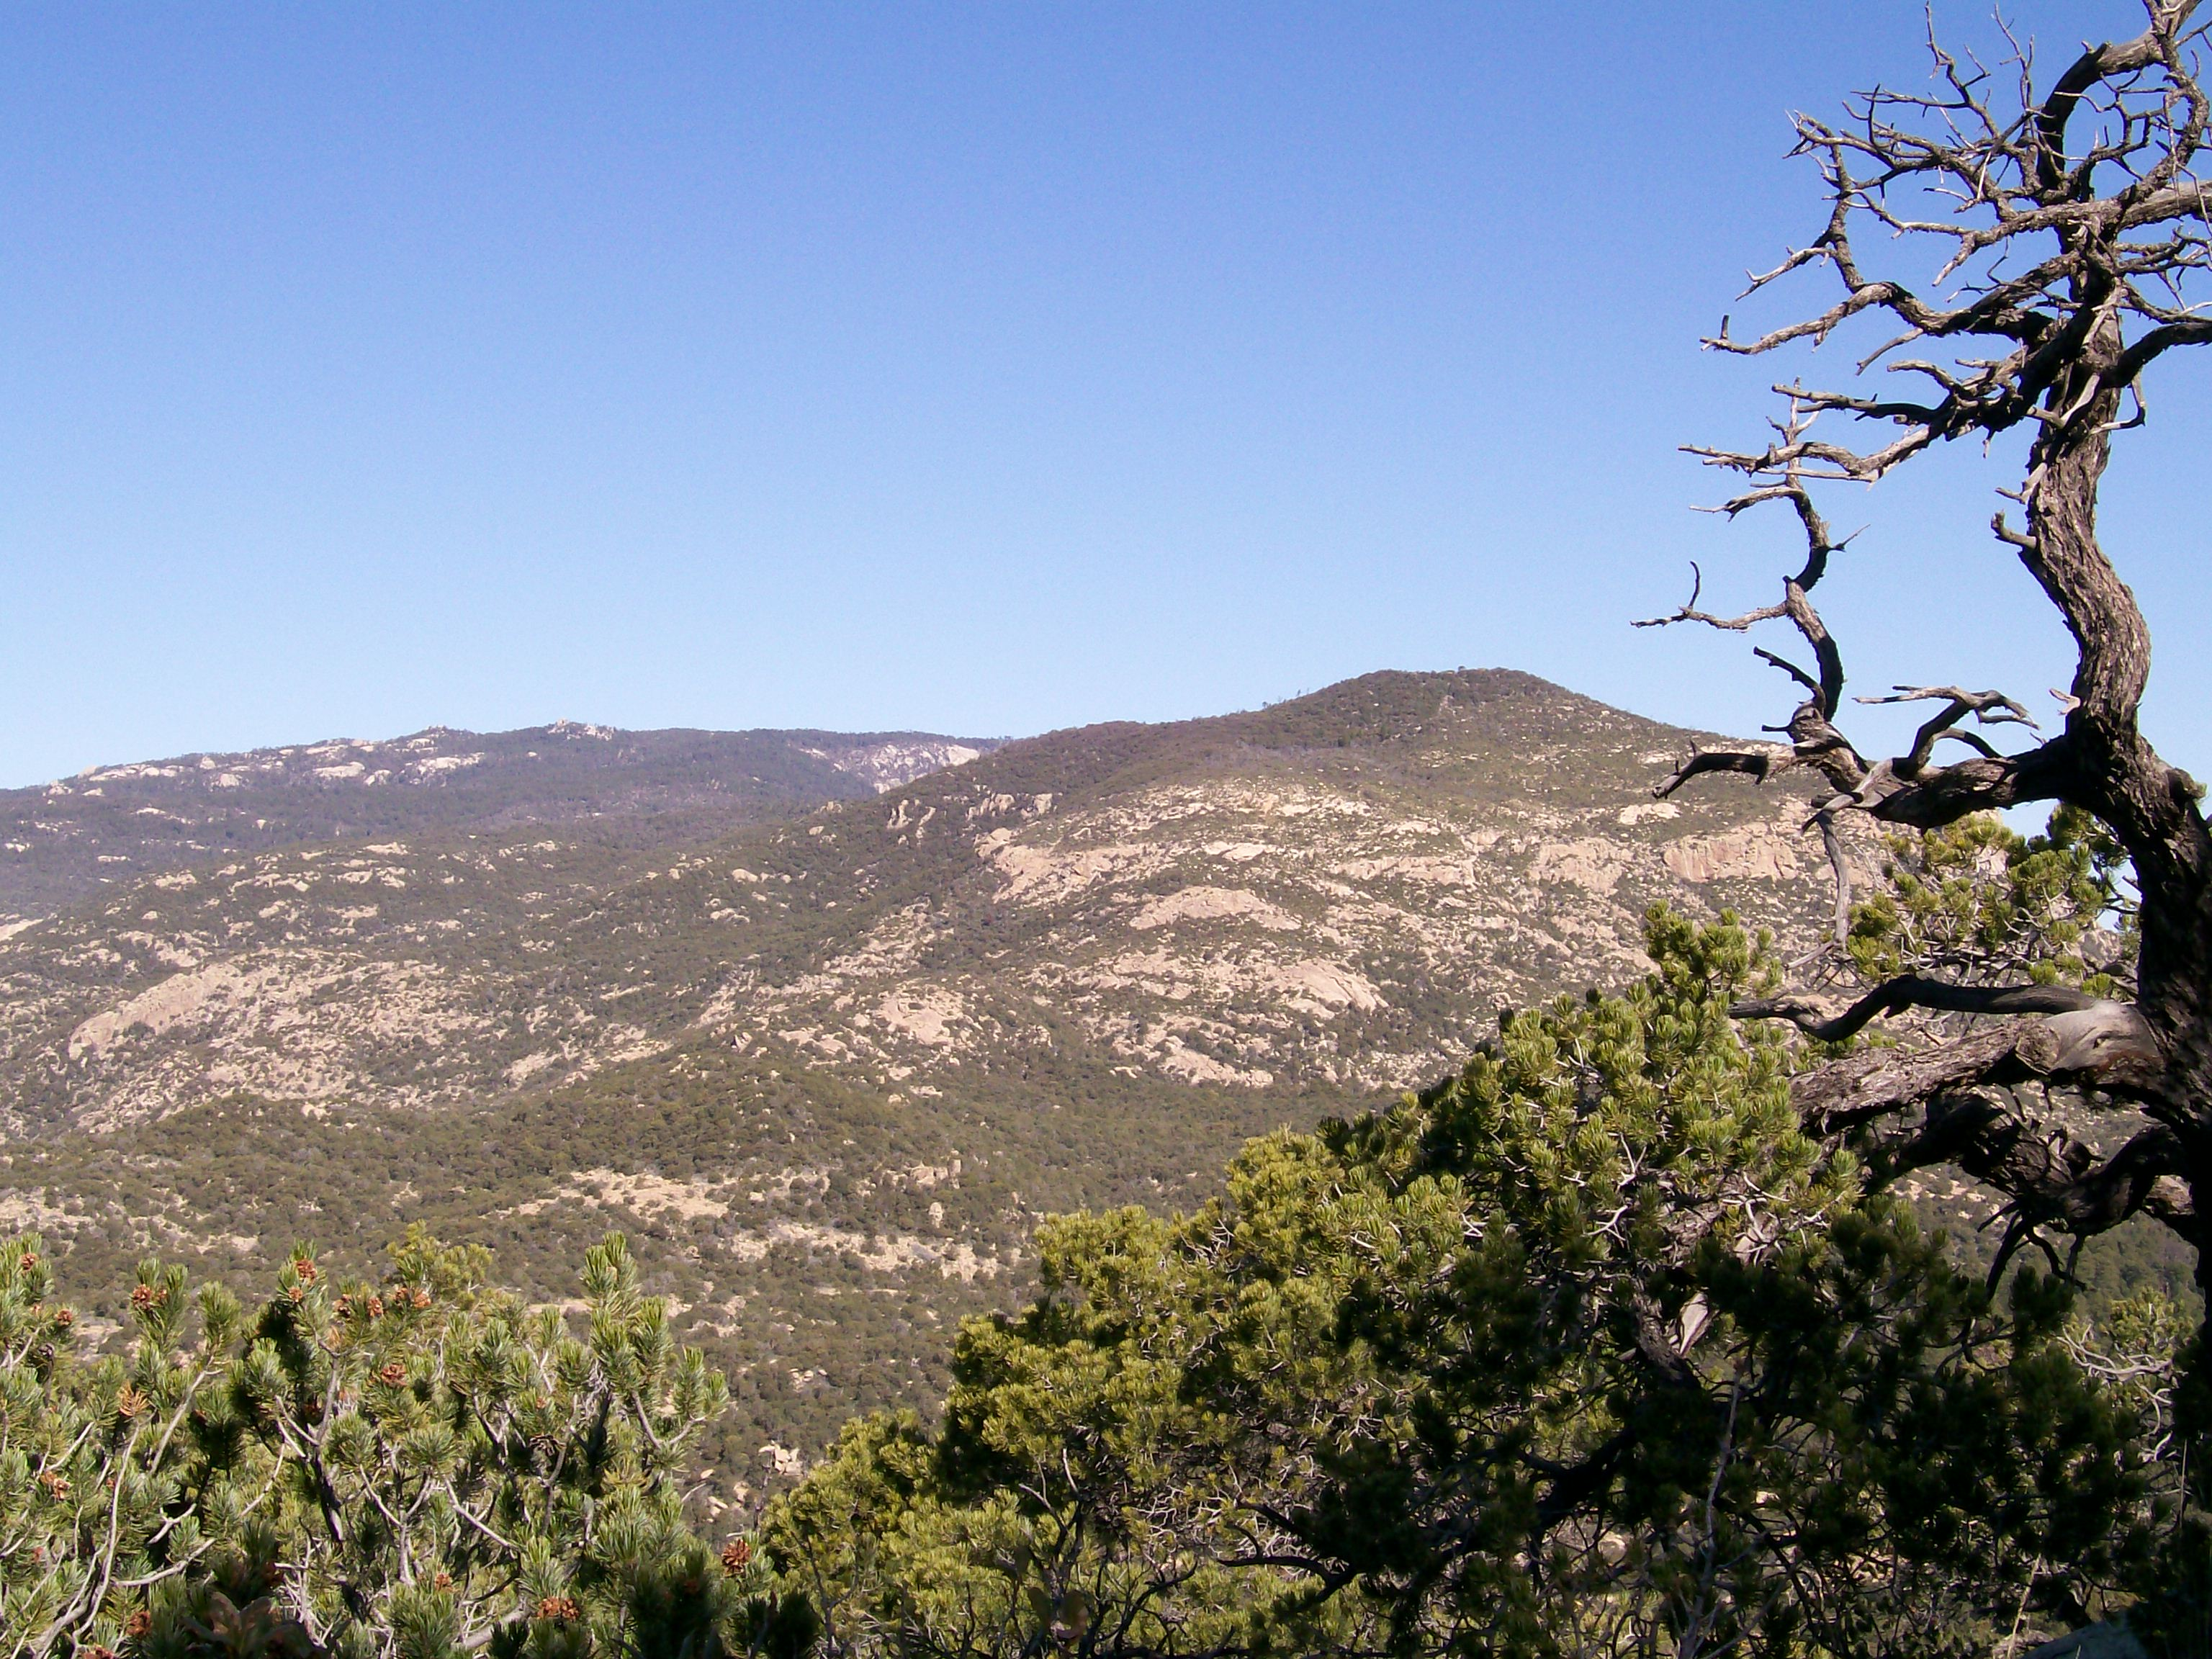 Looking toward Heartbreak Ridge from Rincon Peak area